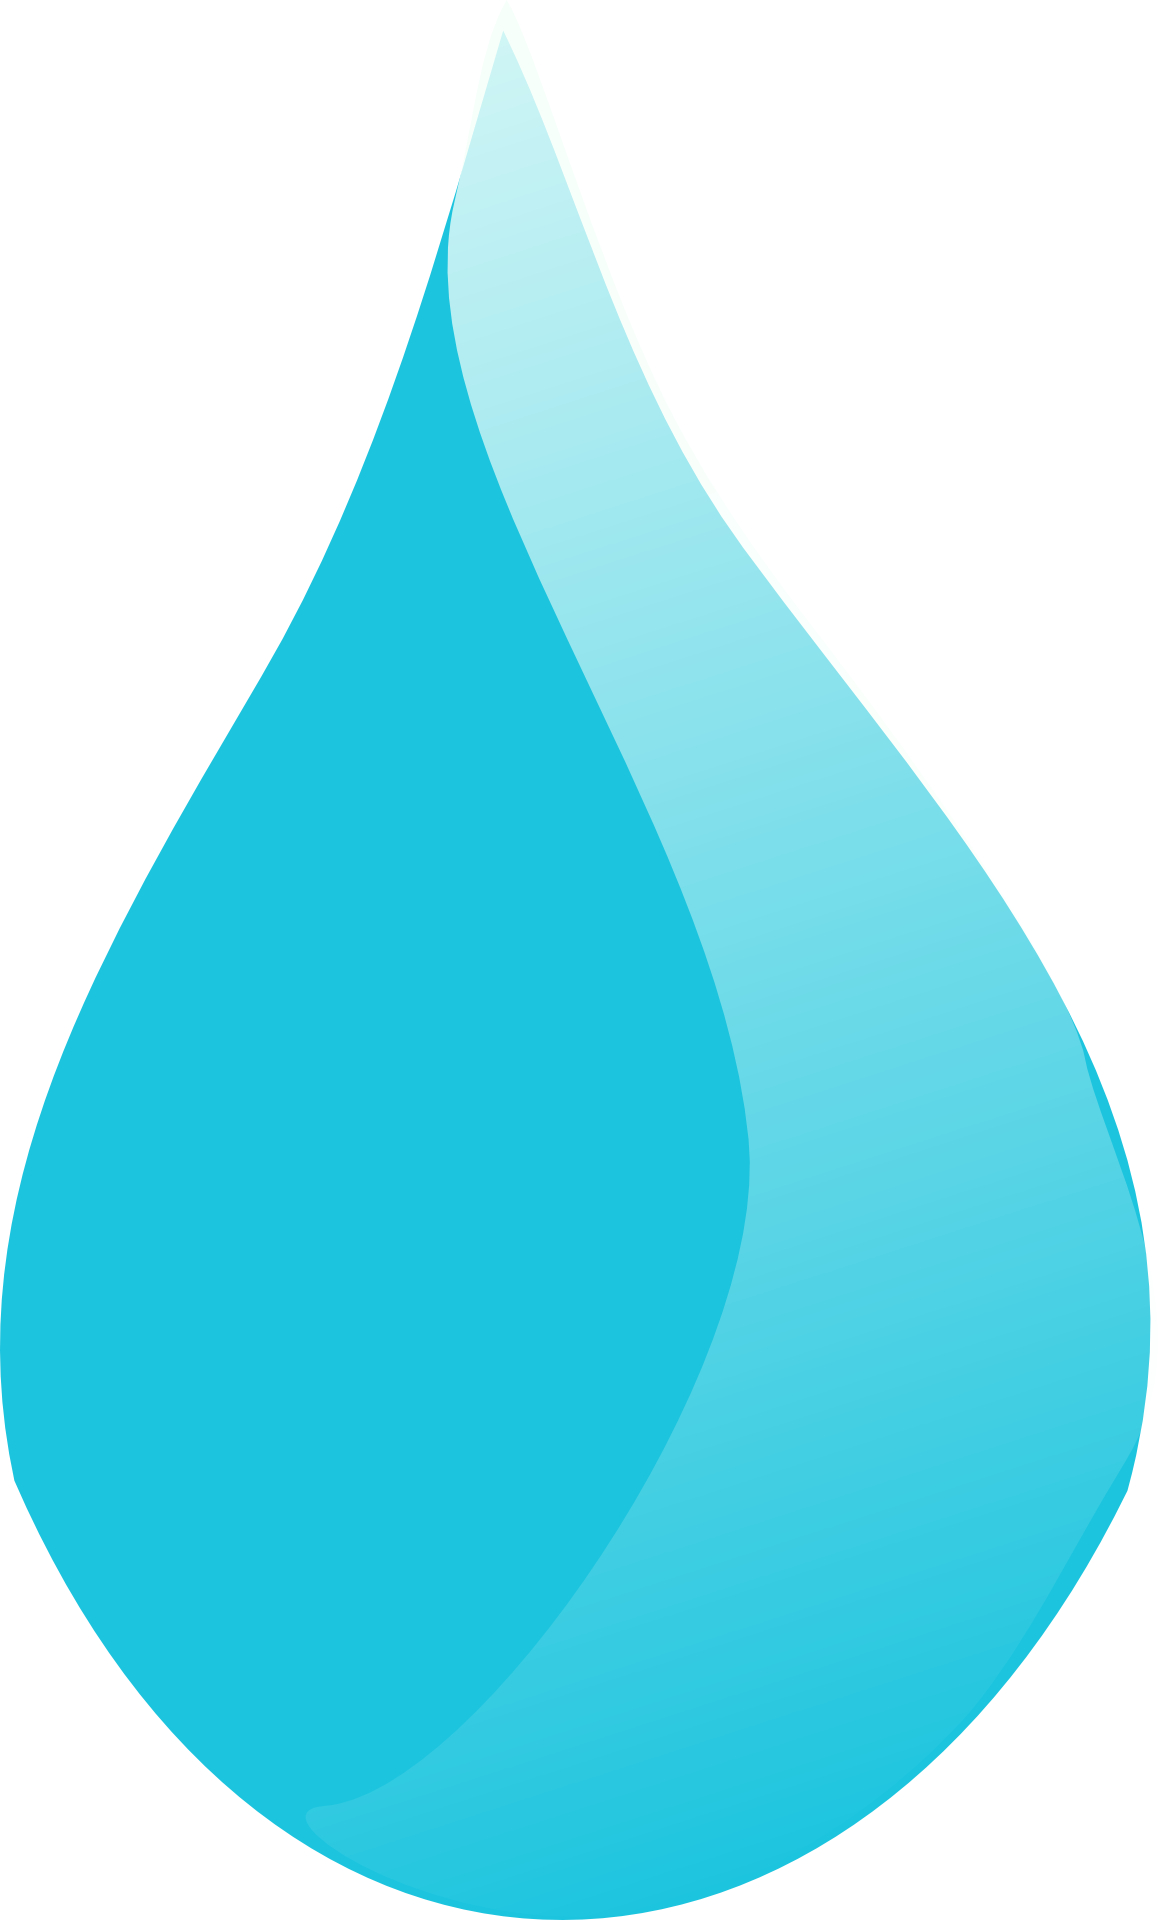 Water Drops clipart #13, Download drawings